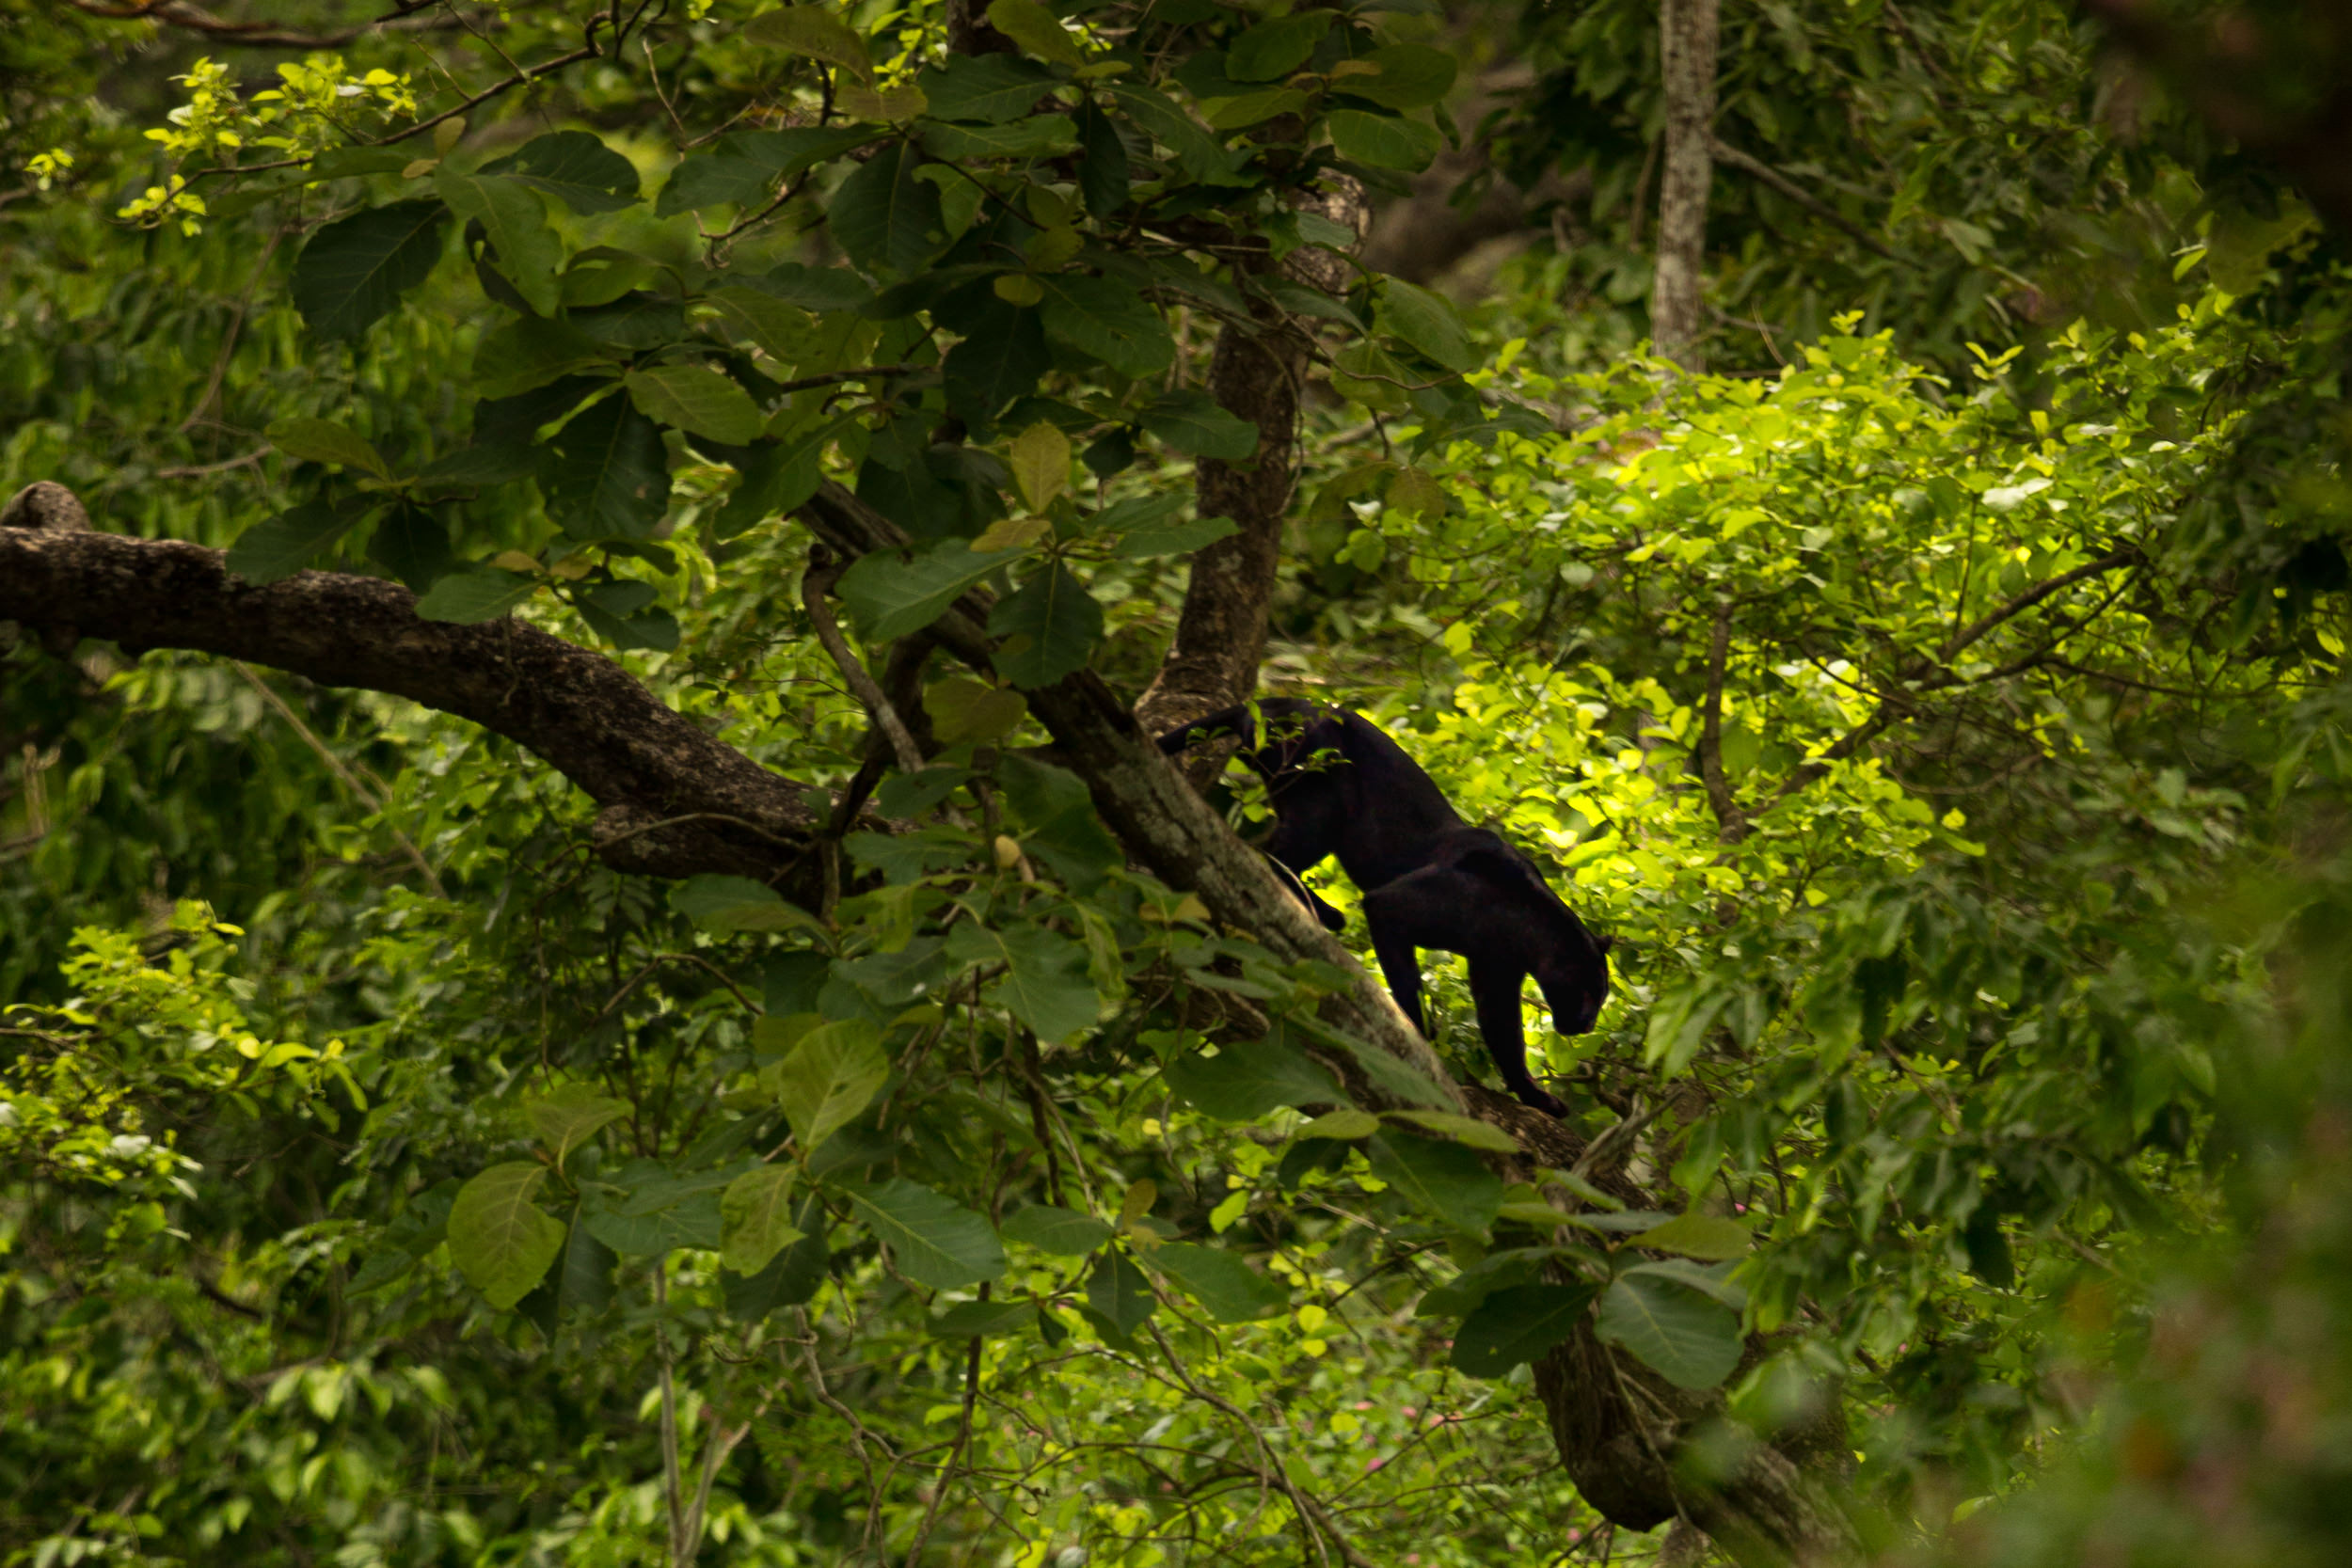 This black panther was taken in a bus. It allowed me to get up high and get the eye-level angle.